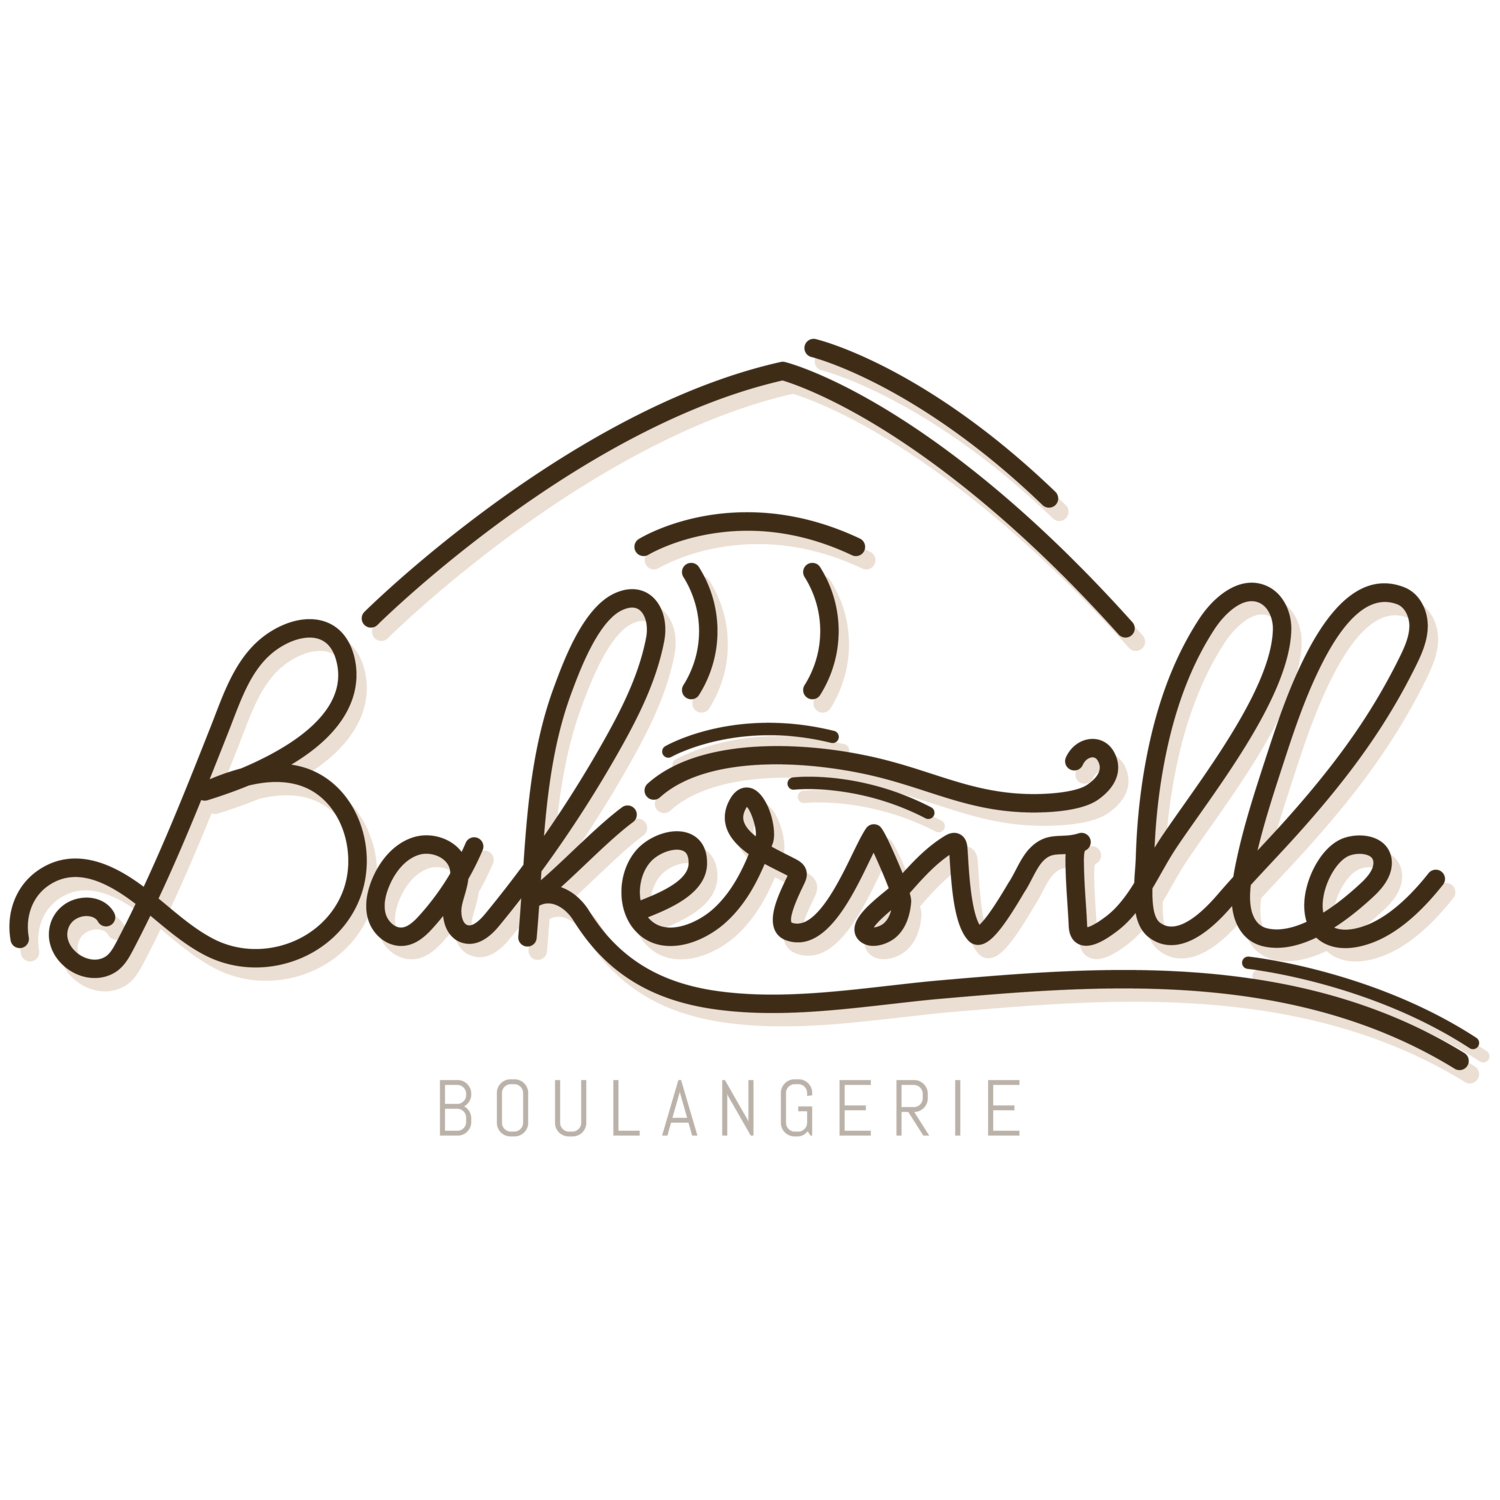 BAKERSVILLE | Korean Style Pastries and Baked Goods